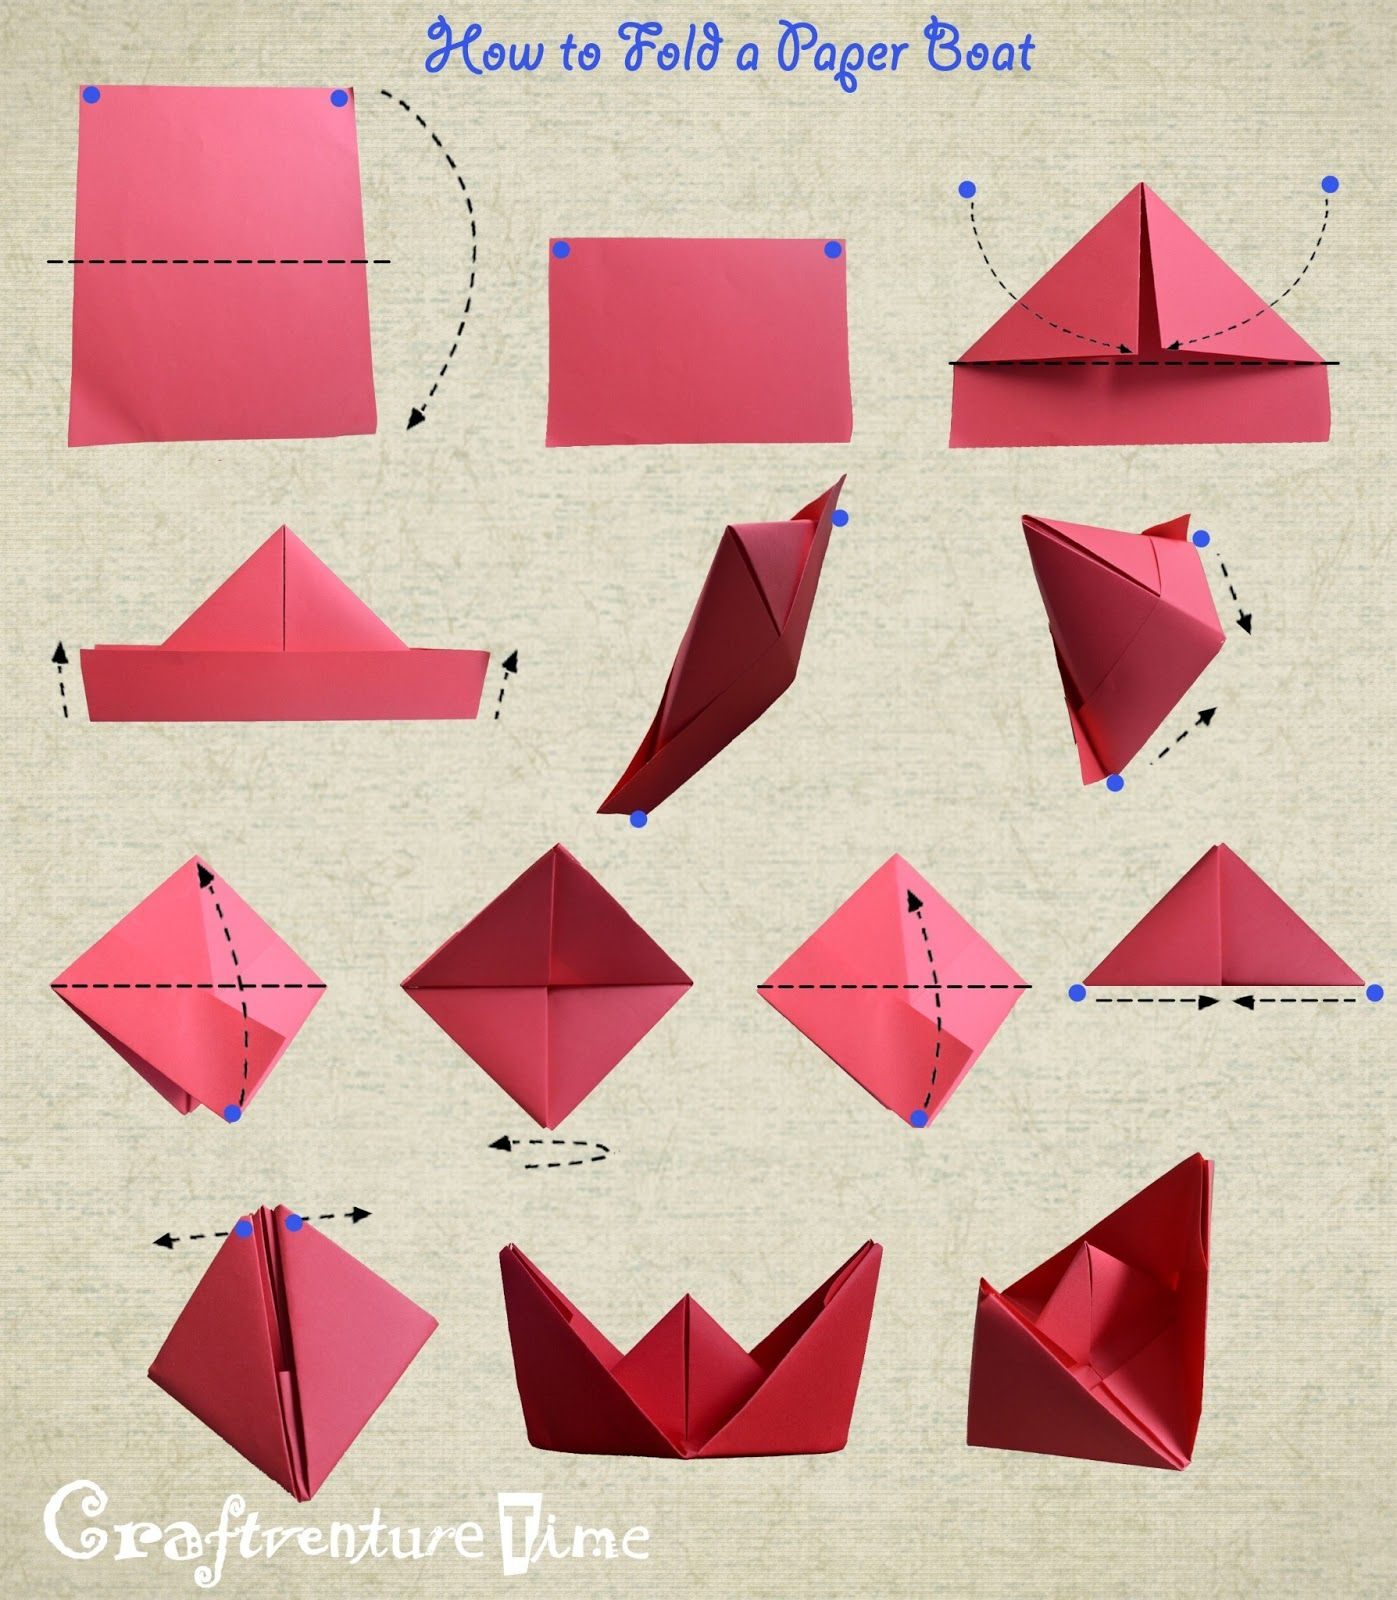 how to fold a paper boat   חטיבת חומרים   Pinterest